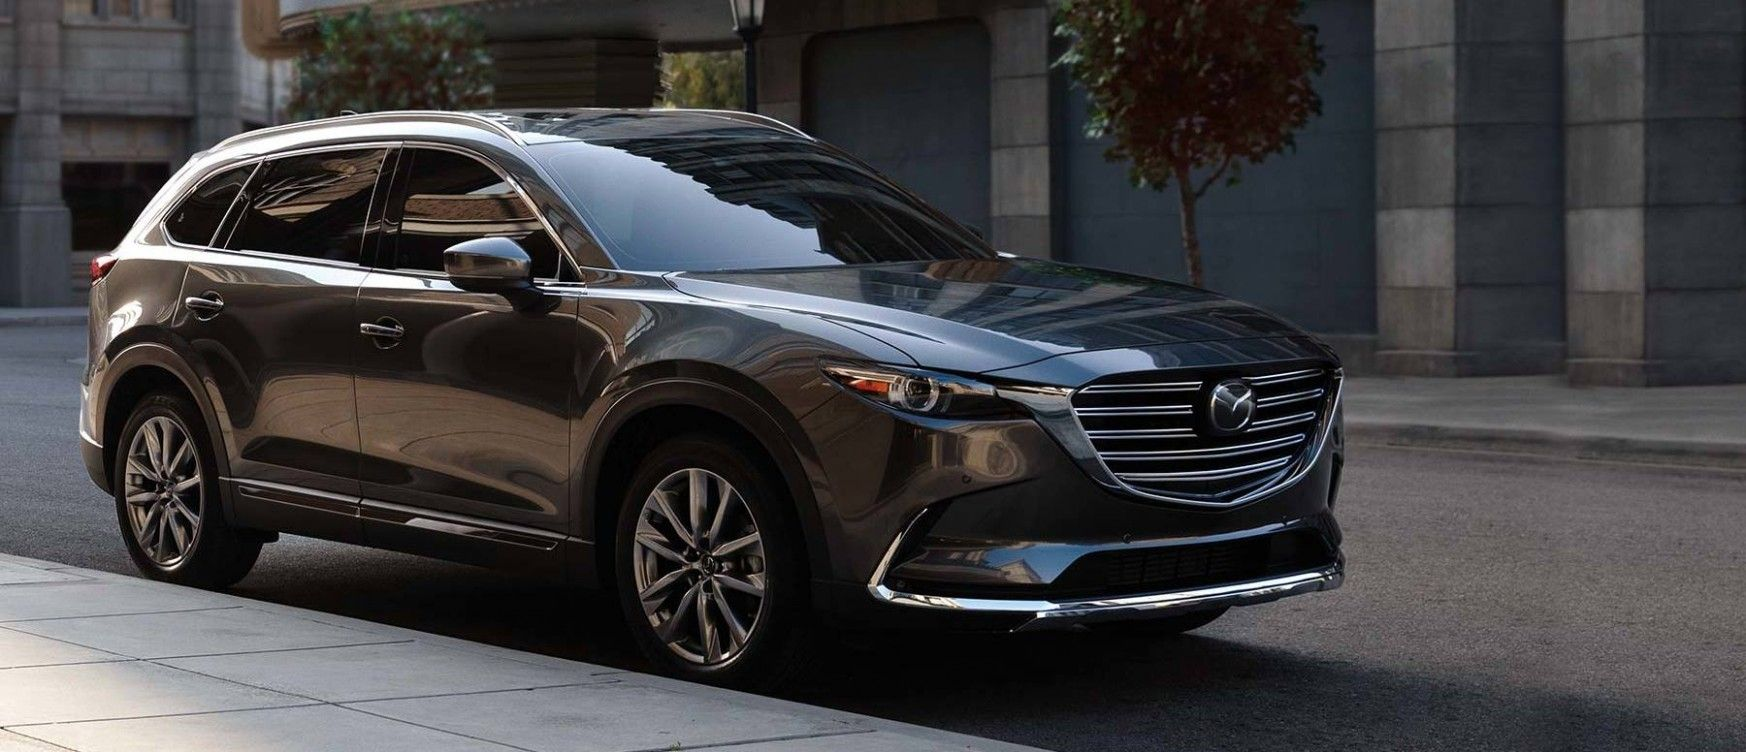 Mazda Lease Deals 2020 Model Mazda Cx 9 Mazda Suv